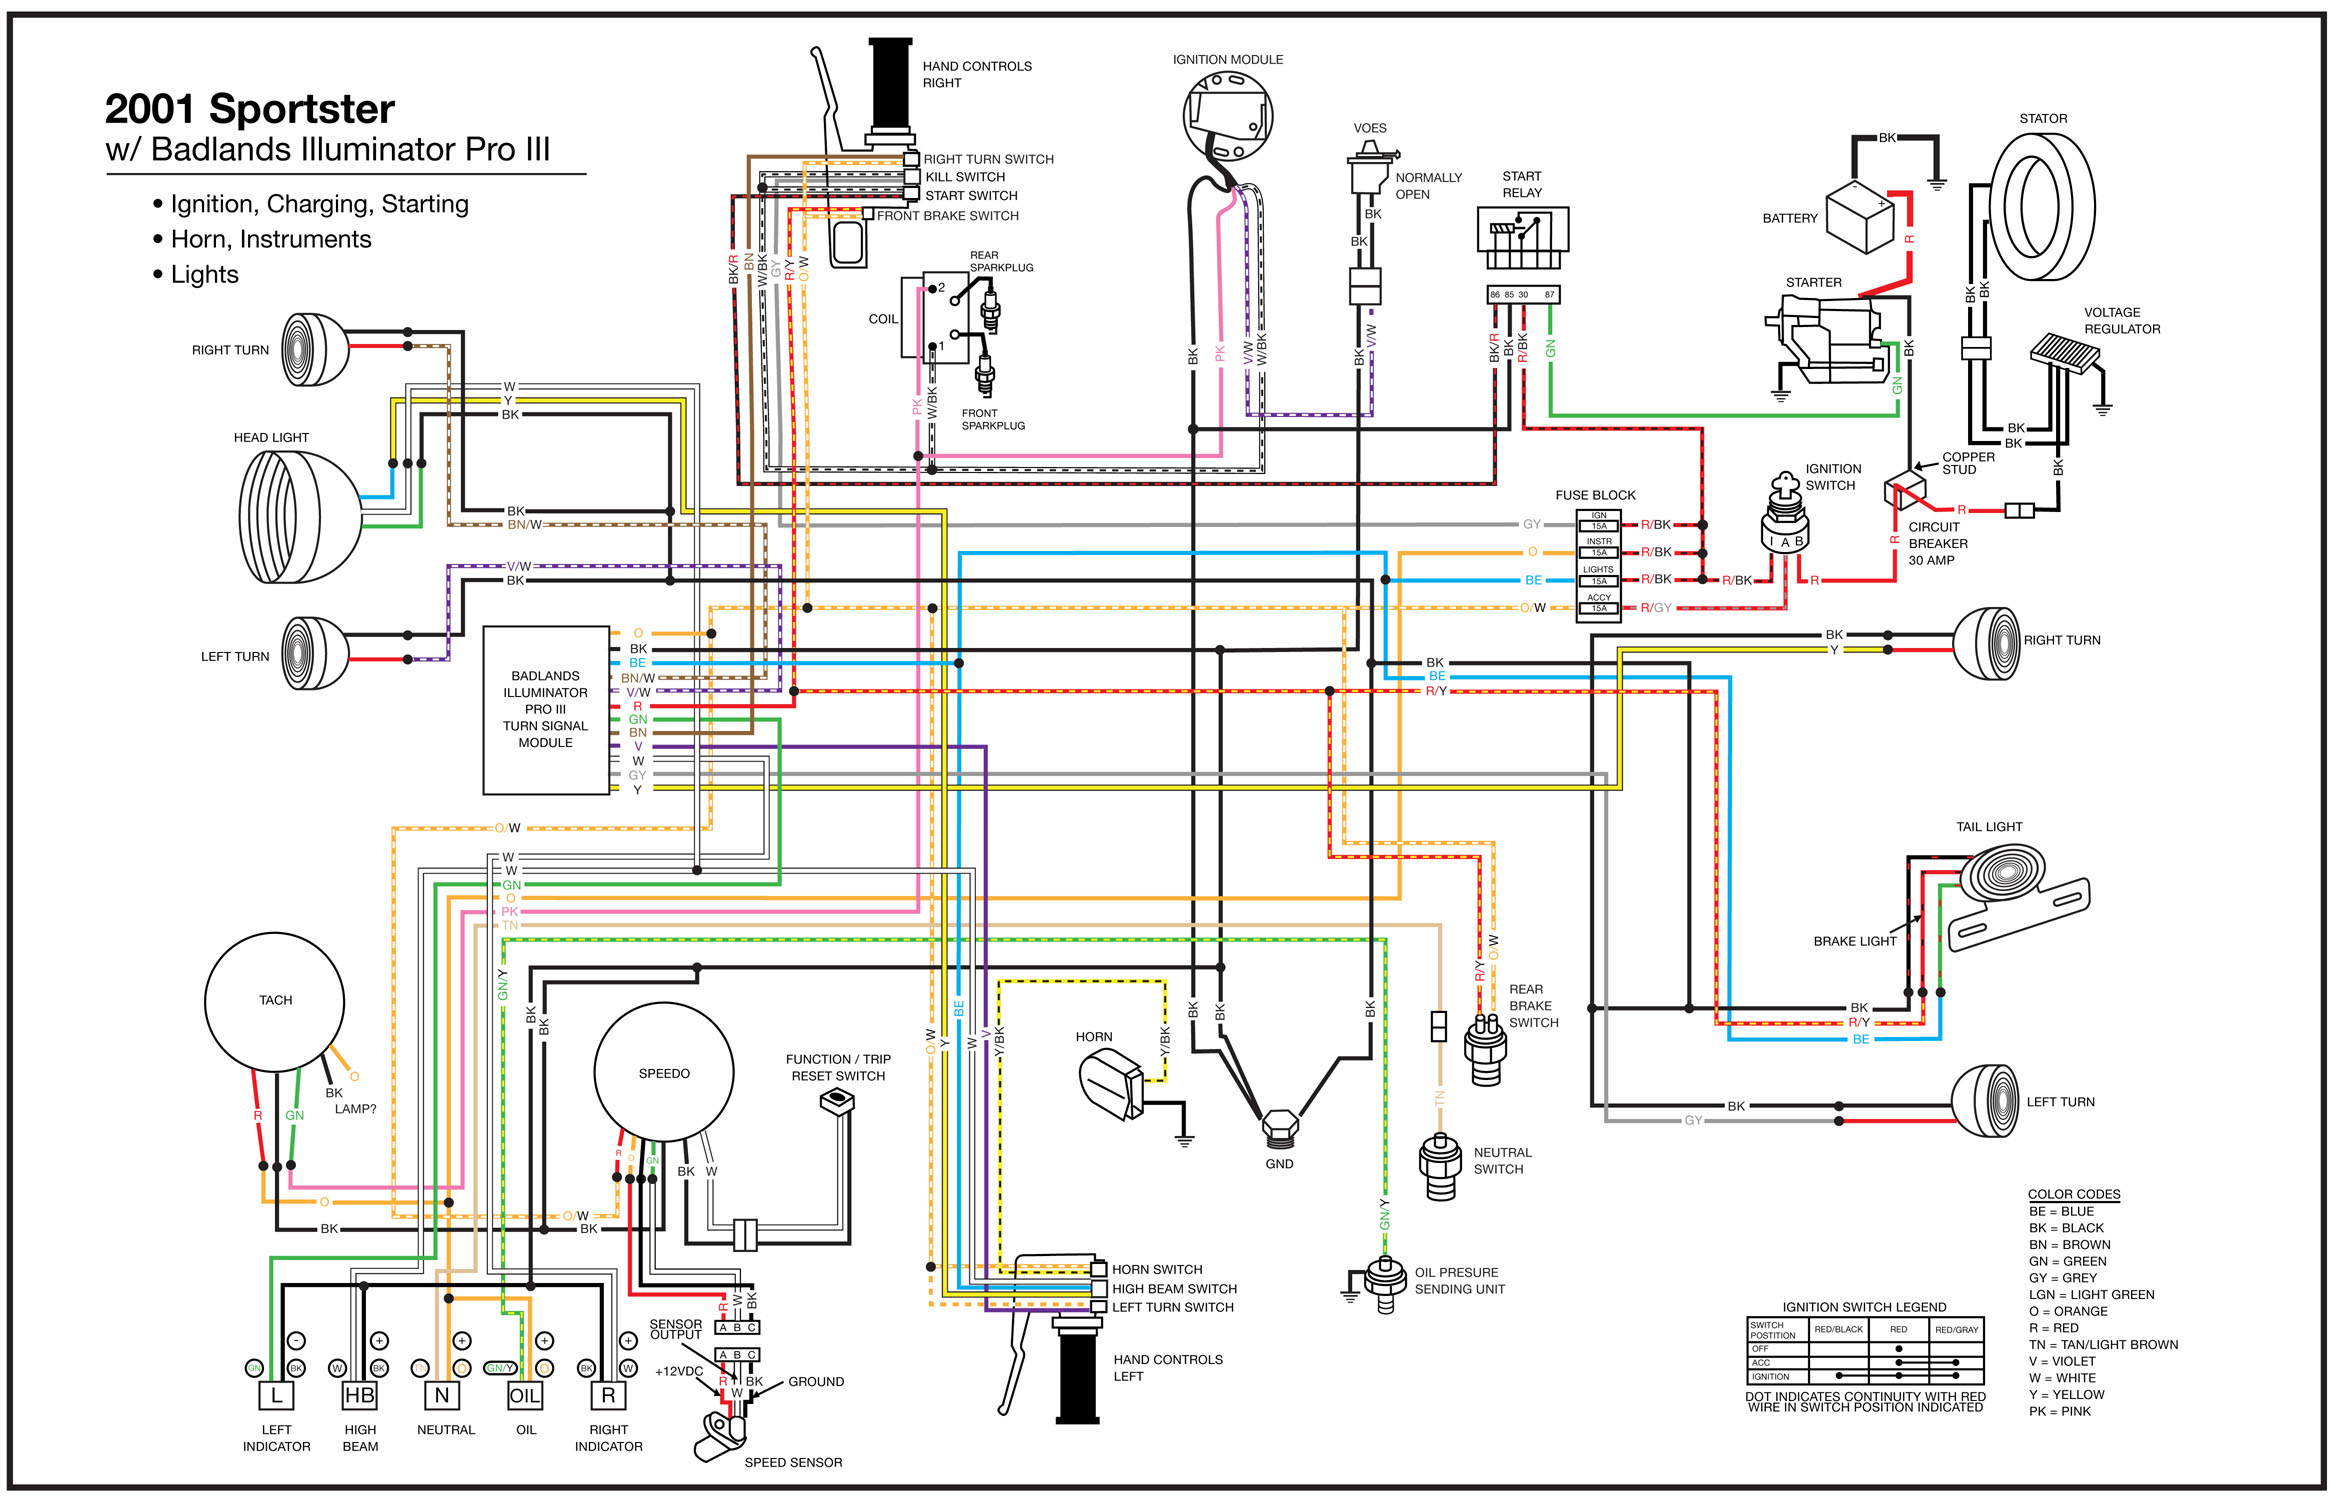 Sportster Badlands_Wiring_Diagram?resize=640%2C410&ssl=1 enchanting sportster wiring diagram images wiring schematic  at gsmx.co